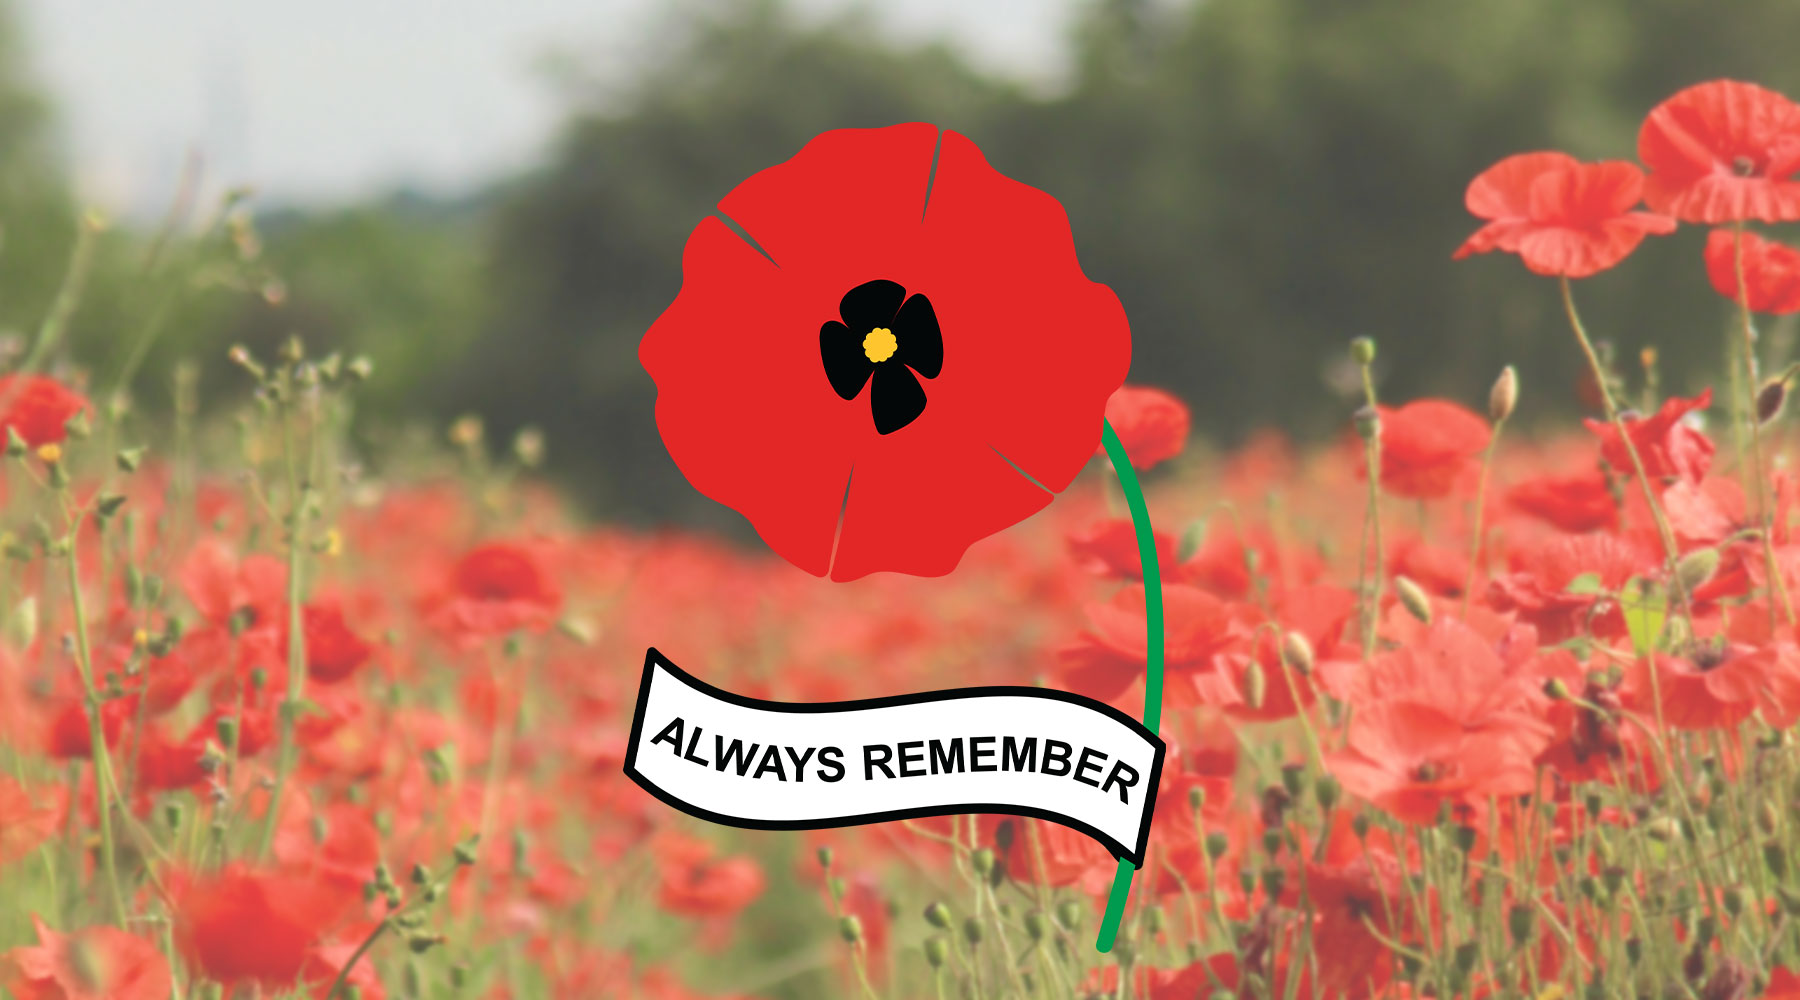 Veterans Day Remembrance Poppy | SVG DXF EPS PNG Cut Files | Free for Commercial Use